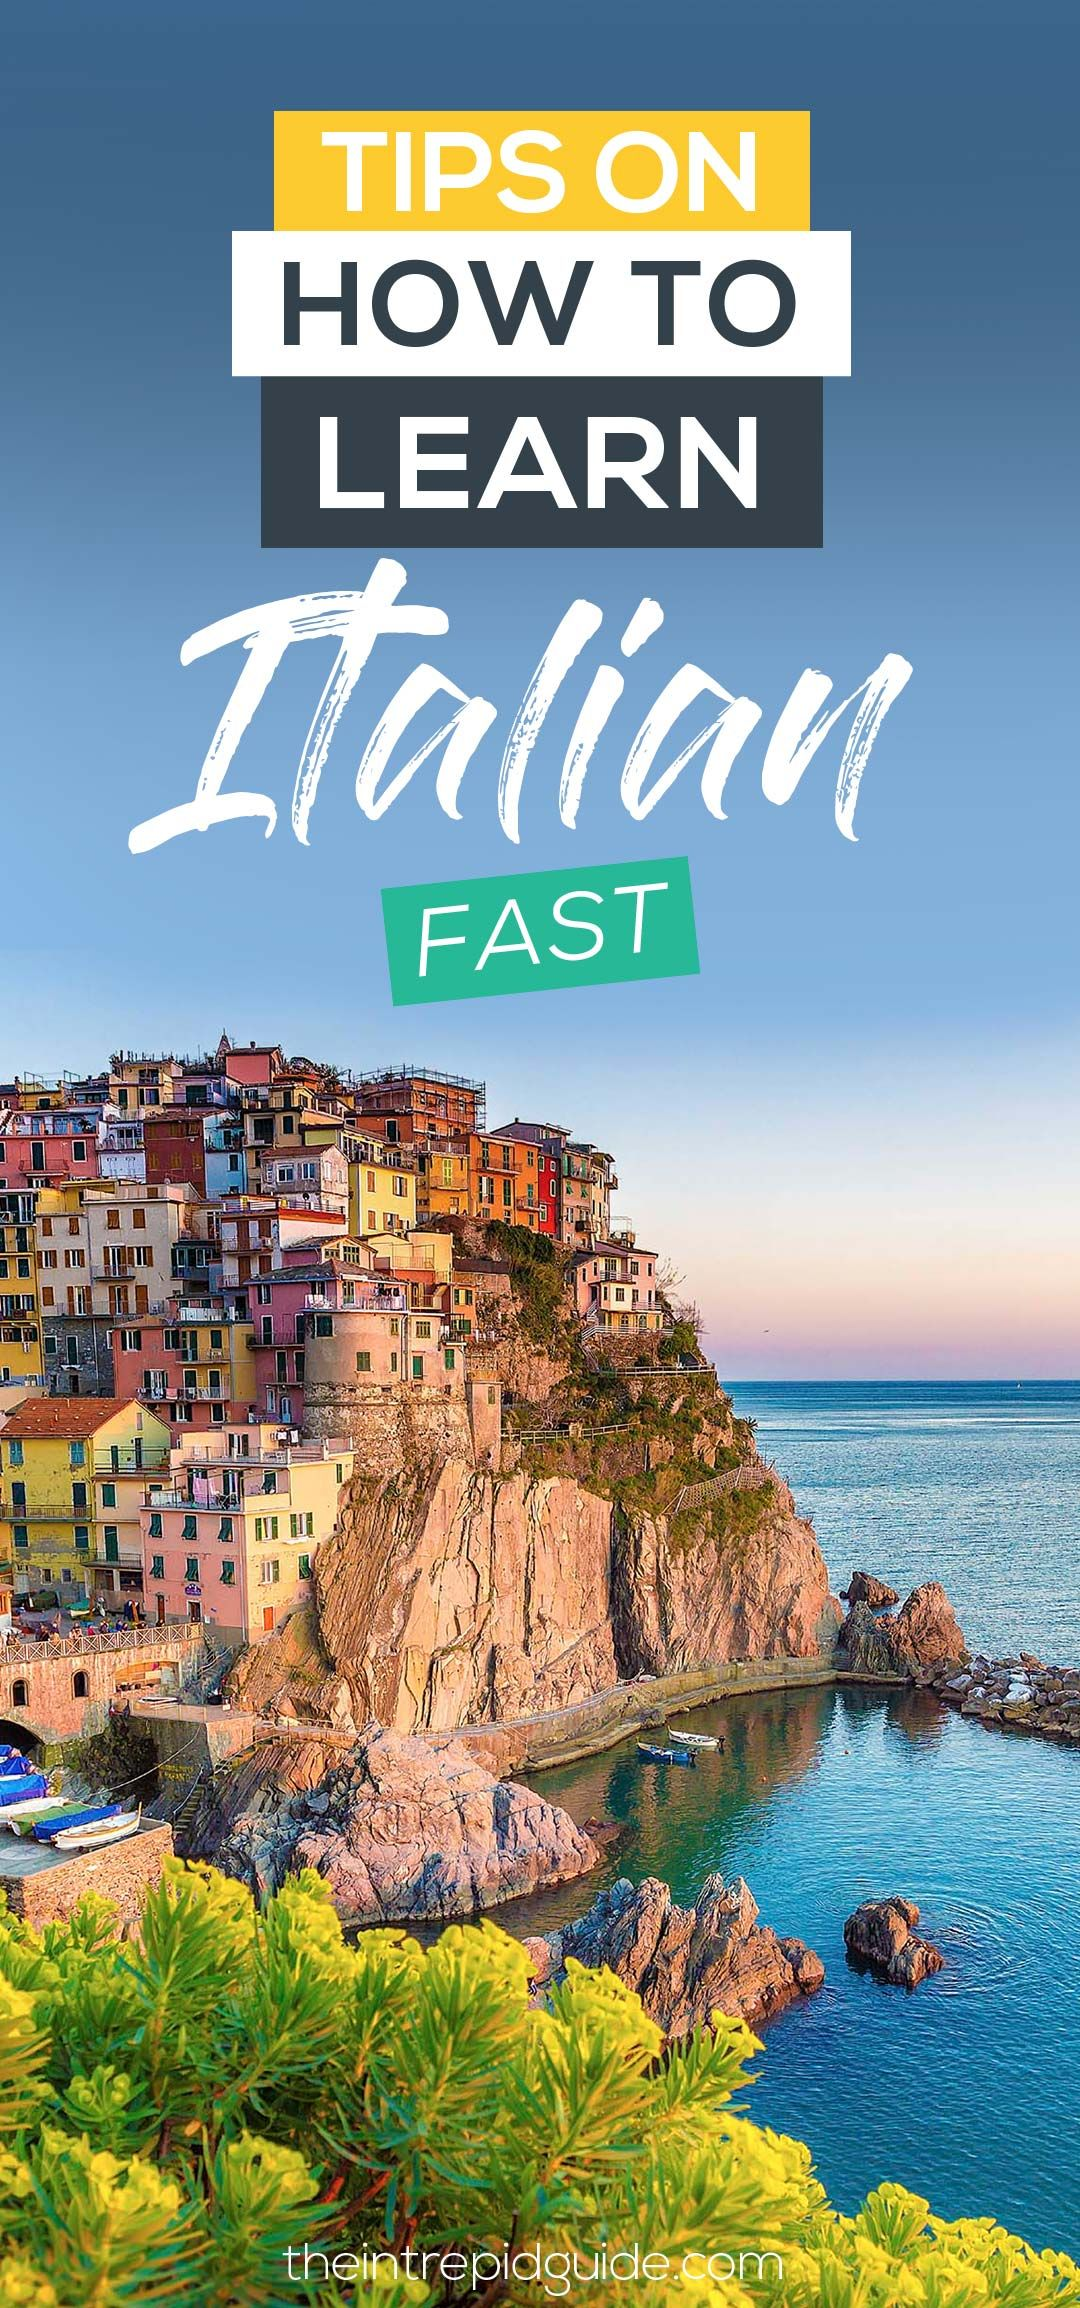 How to Learn Italian FAST in 8 Hours: Pro Tips for Fluency #holidaytrip